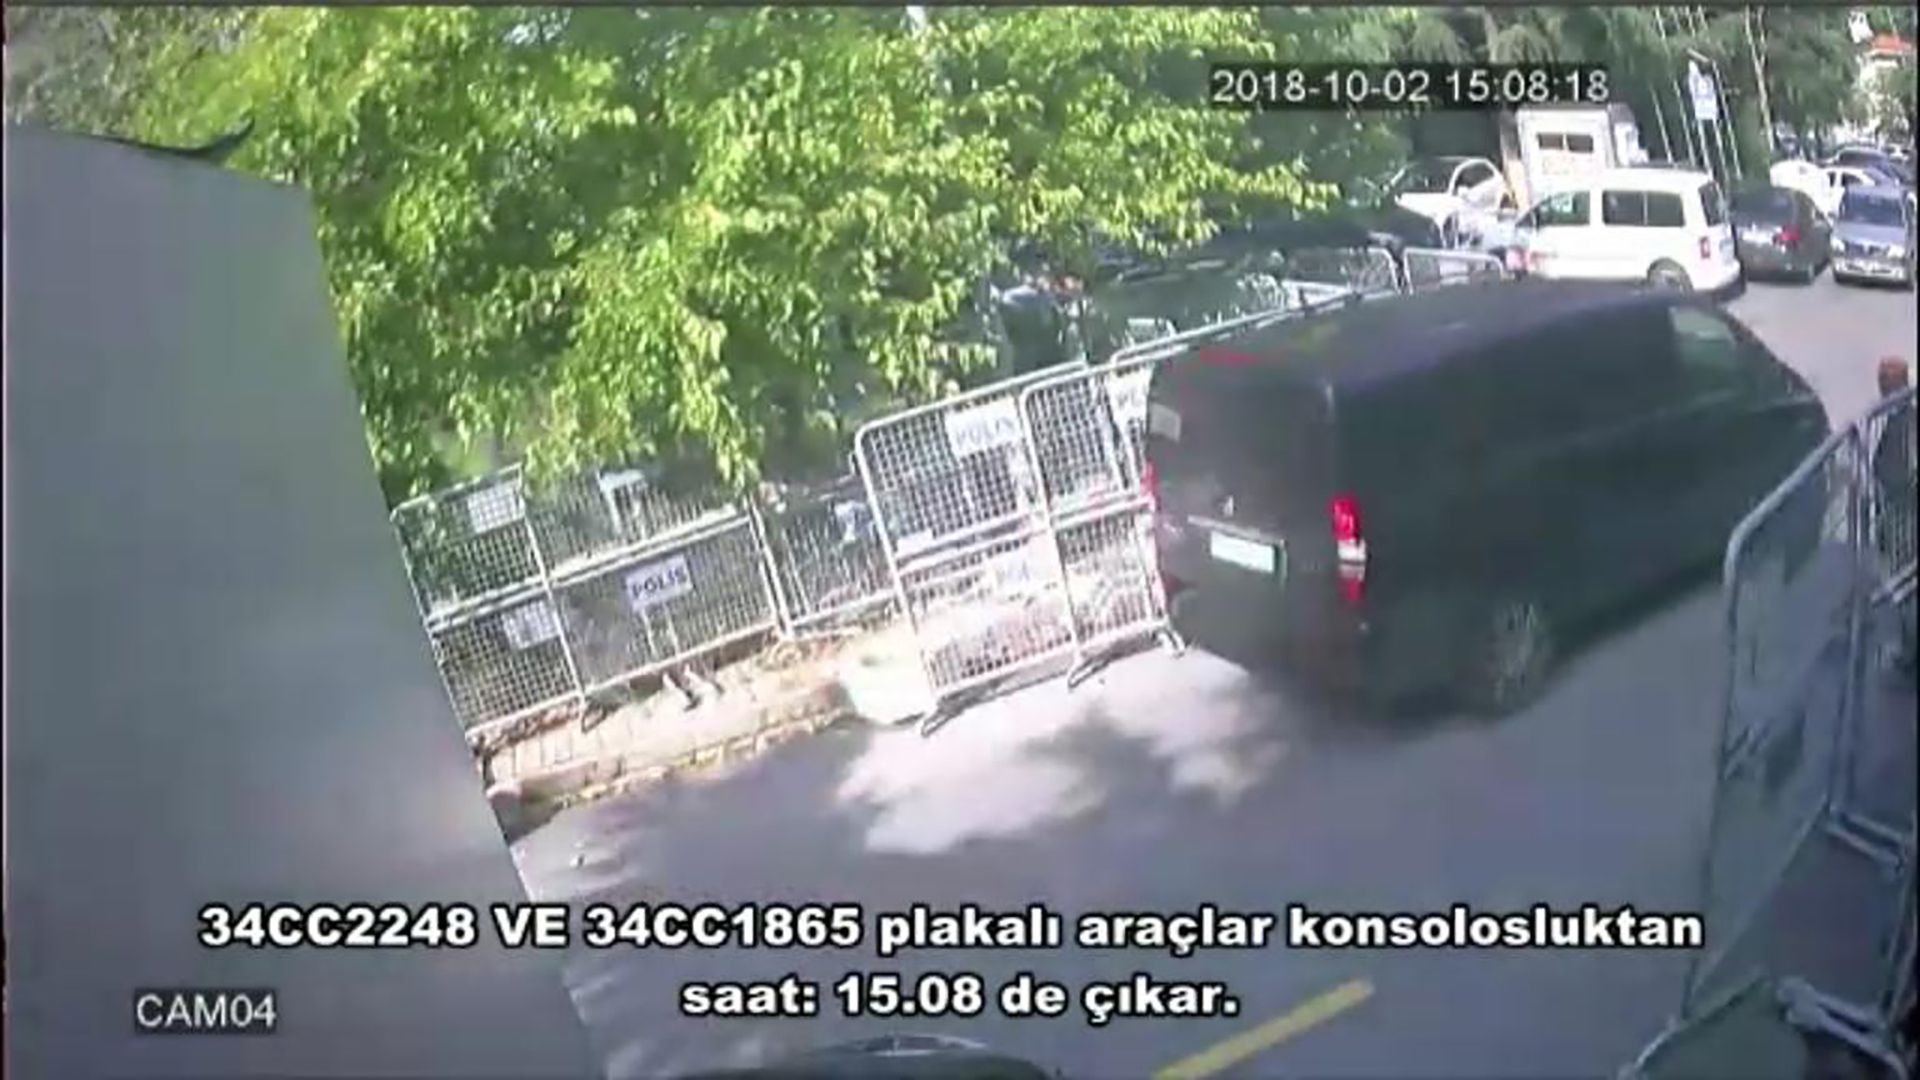 A police CCTV video allegedly shows a black van in front of the Saudi consulate in Istanbul on October 2 when journalist Jamal Khashoggi gone missing. Photo: Sabah Newspaper/AFP/Getty Images